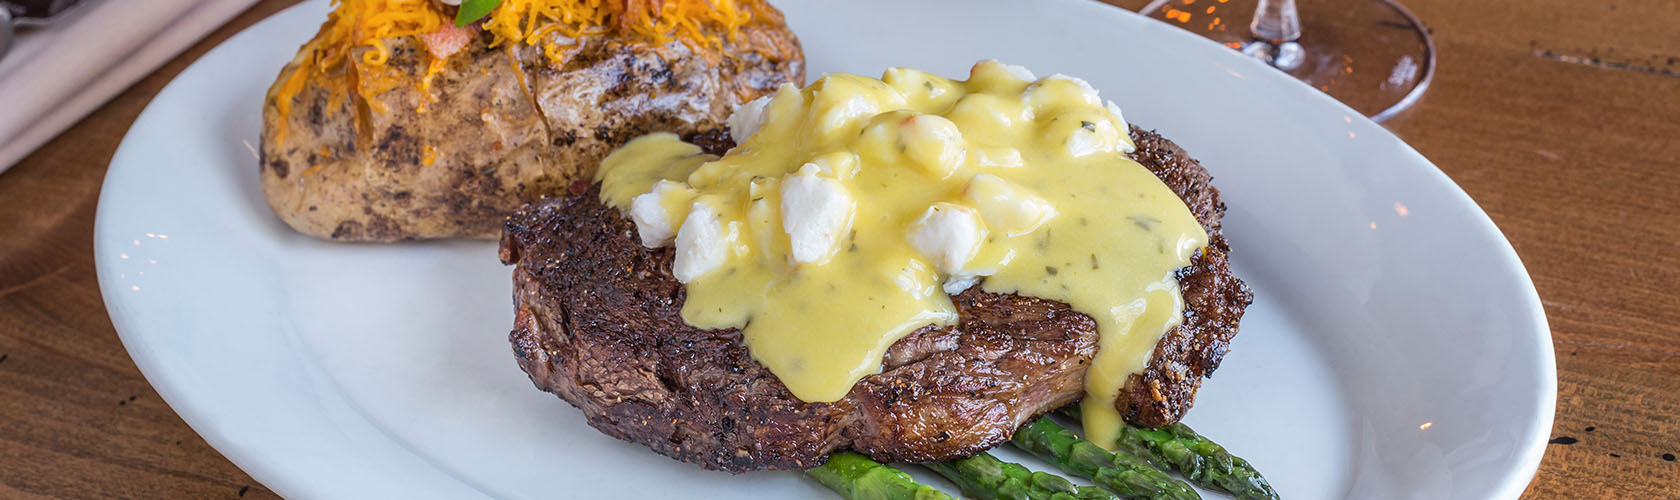 Steak dish with a loaded baked potato and asparagus on the side